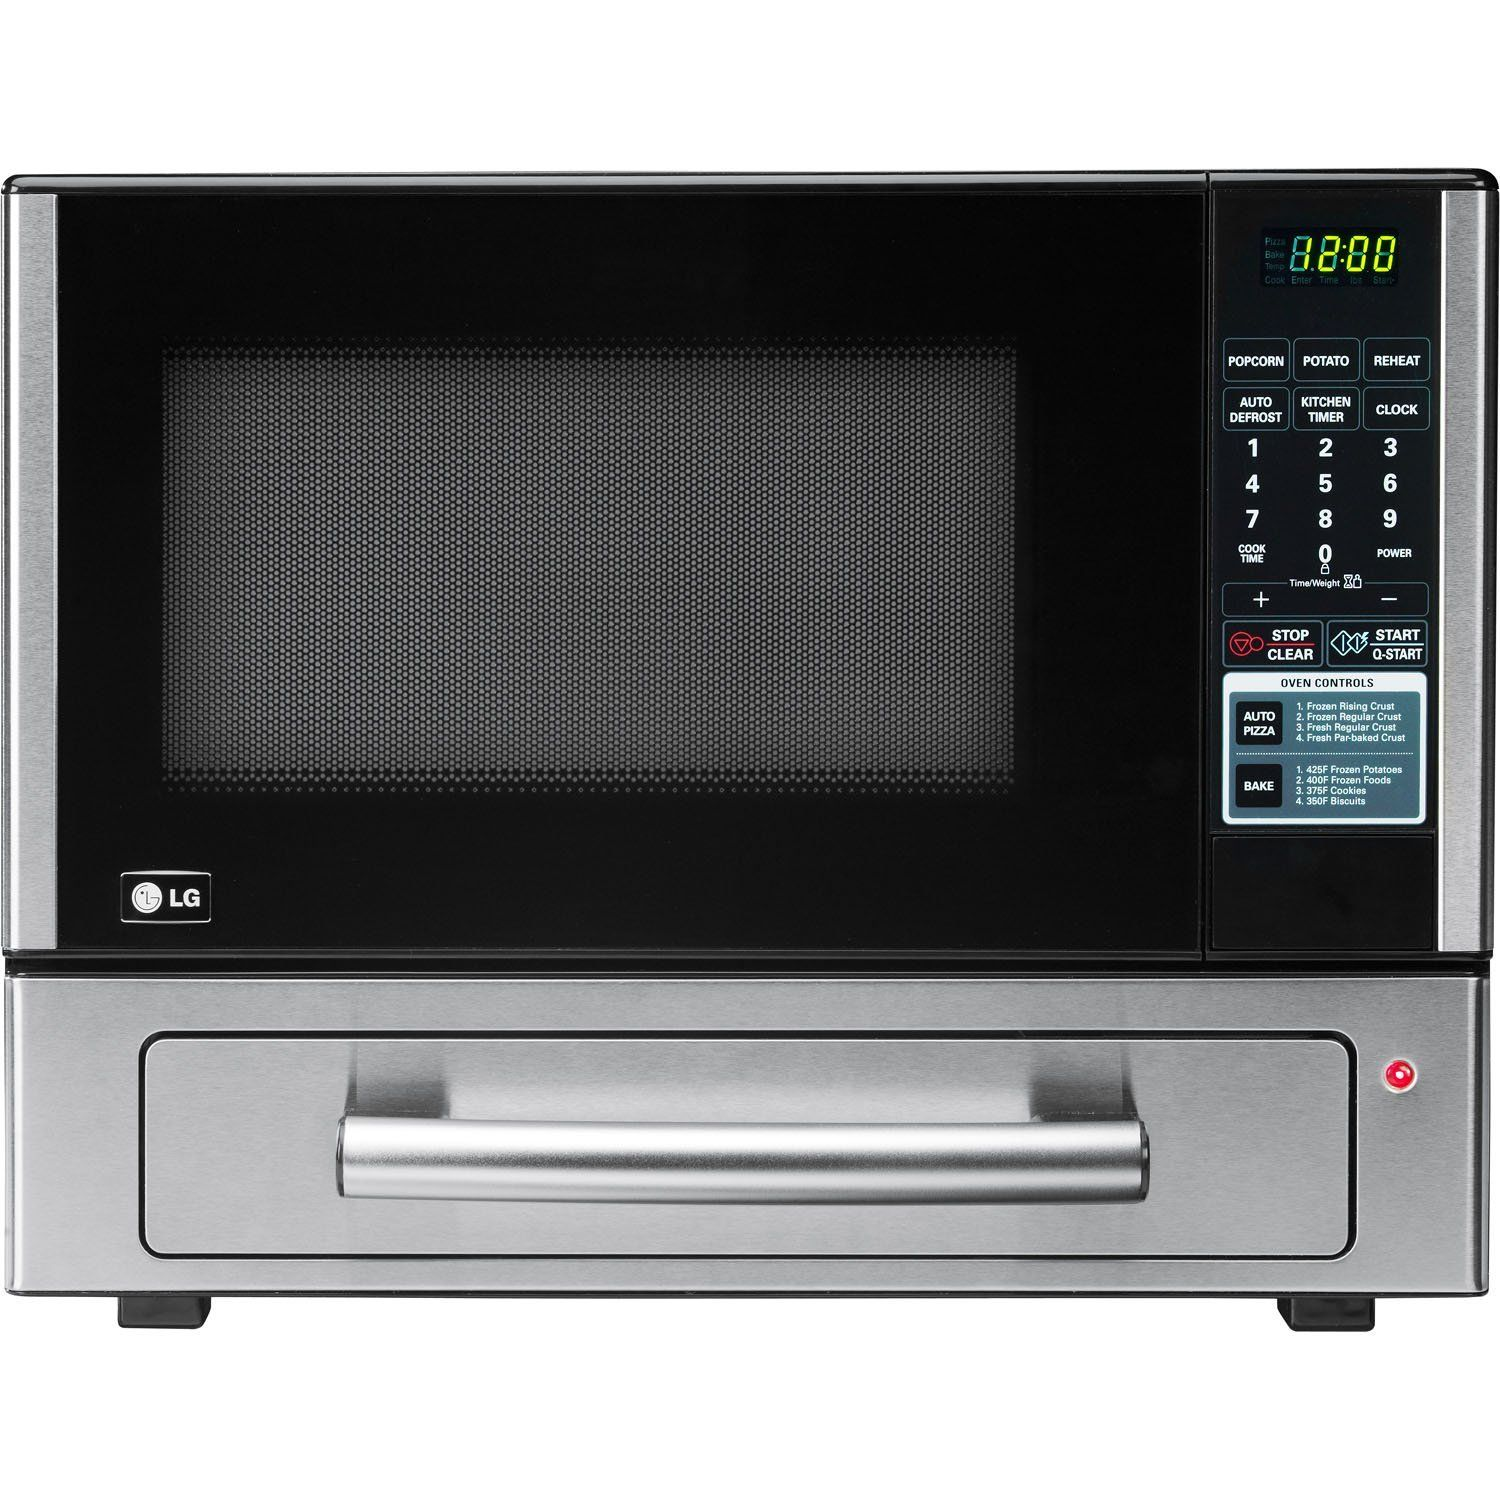 Lg Lcsp1110st 1 1 Cu Ft Counter Top Combo Microwave And Baking